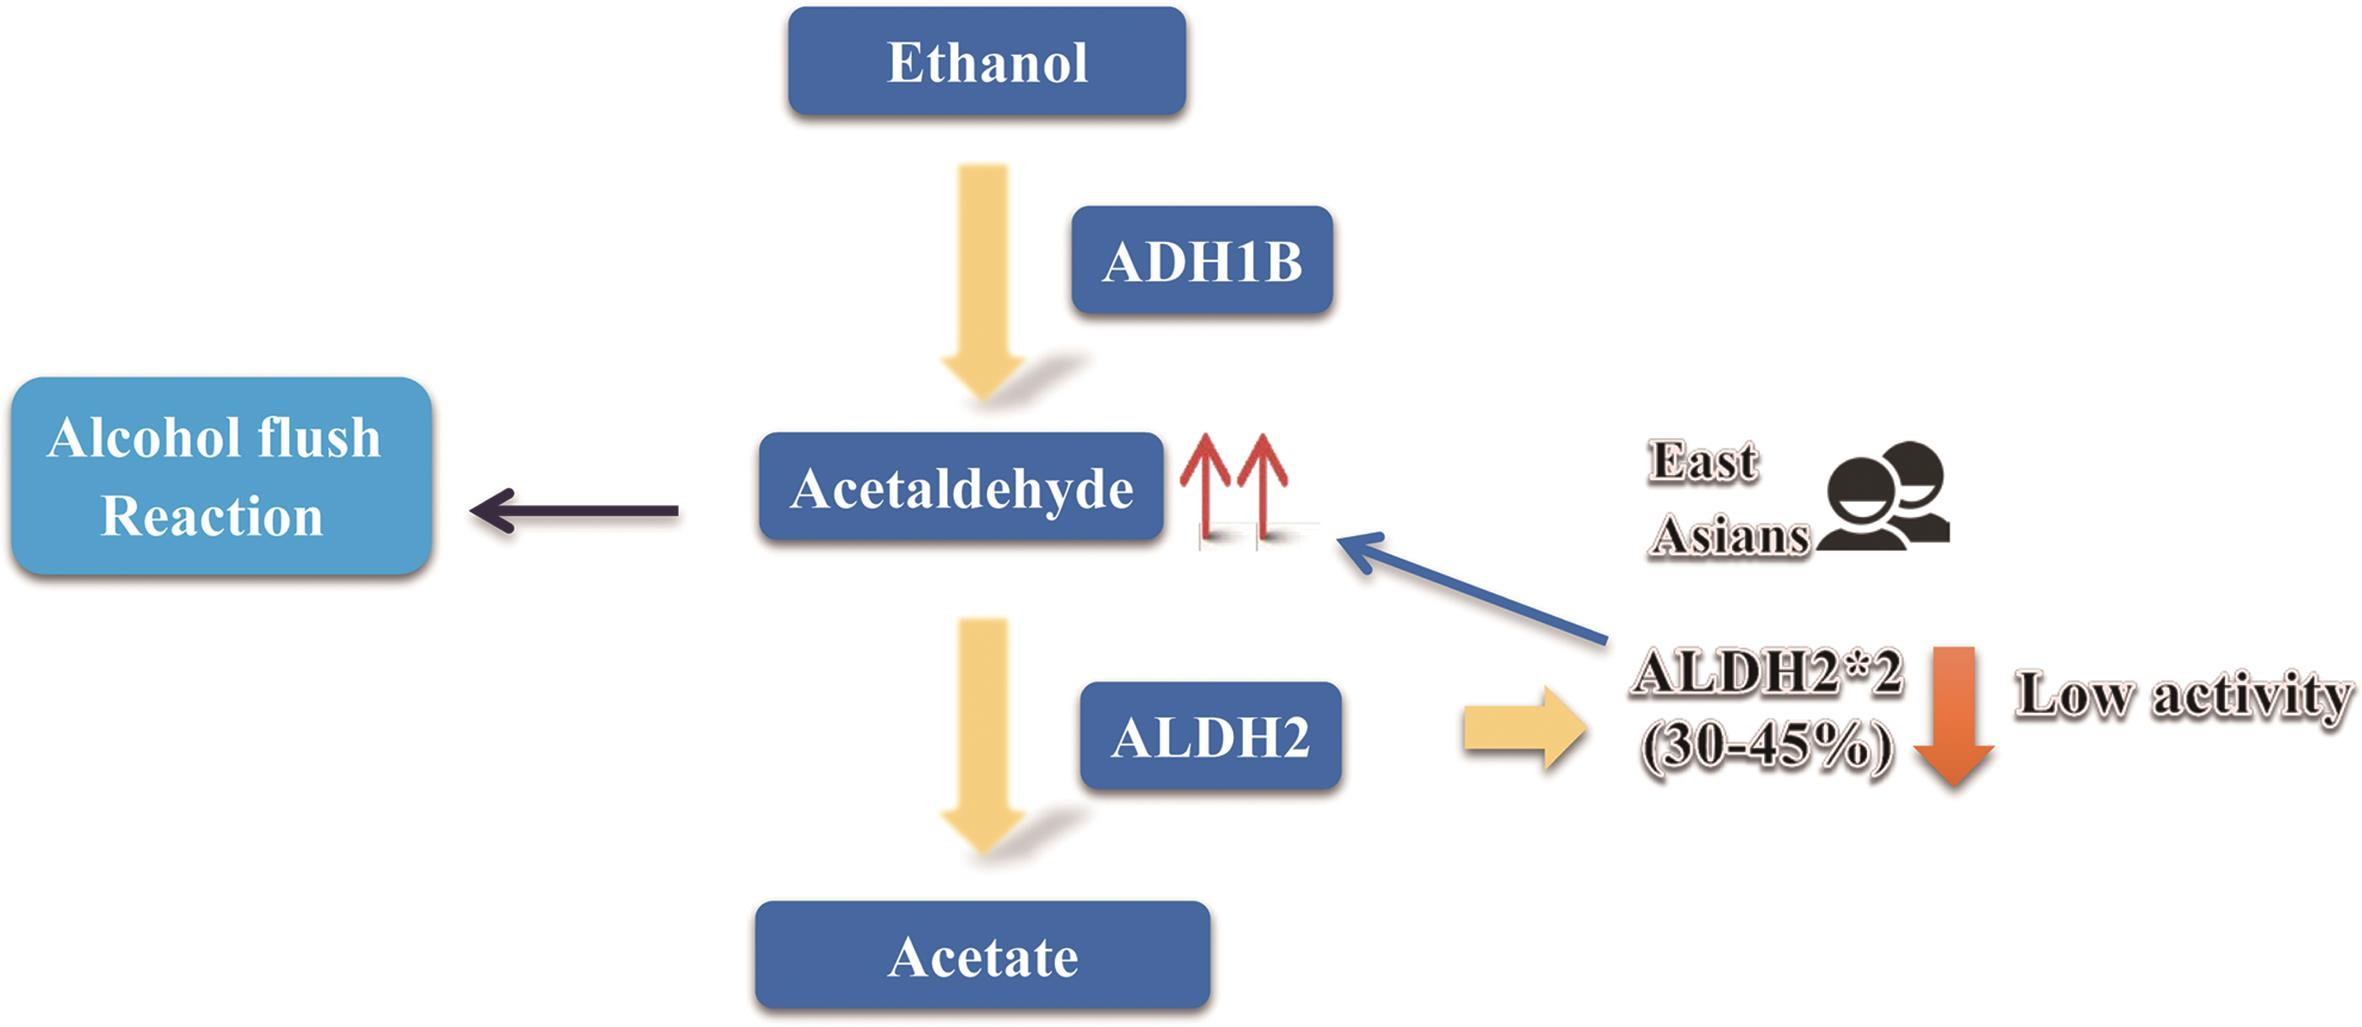 Alcohol metabolism and enzymes that strongly impact alcohol consumption.